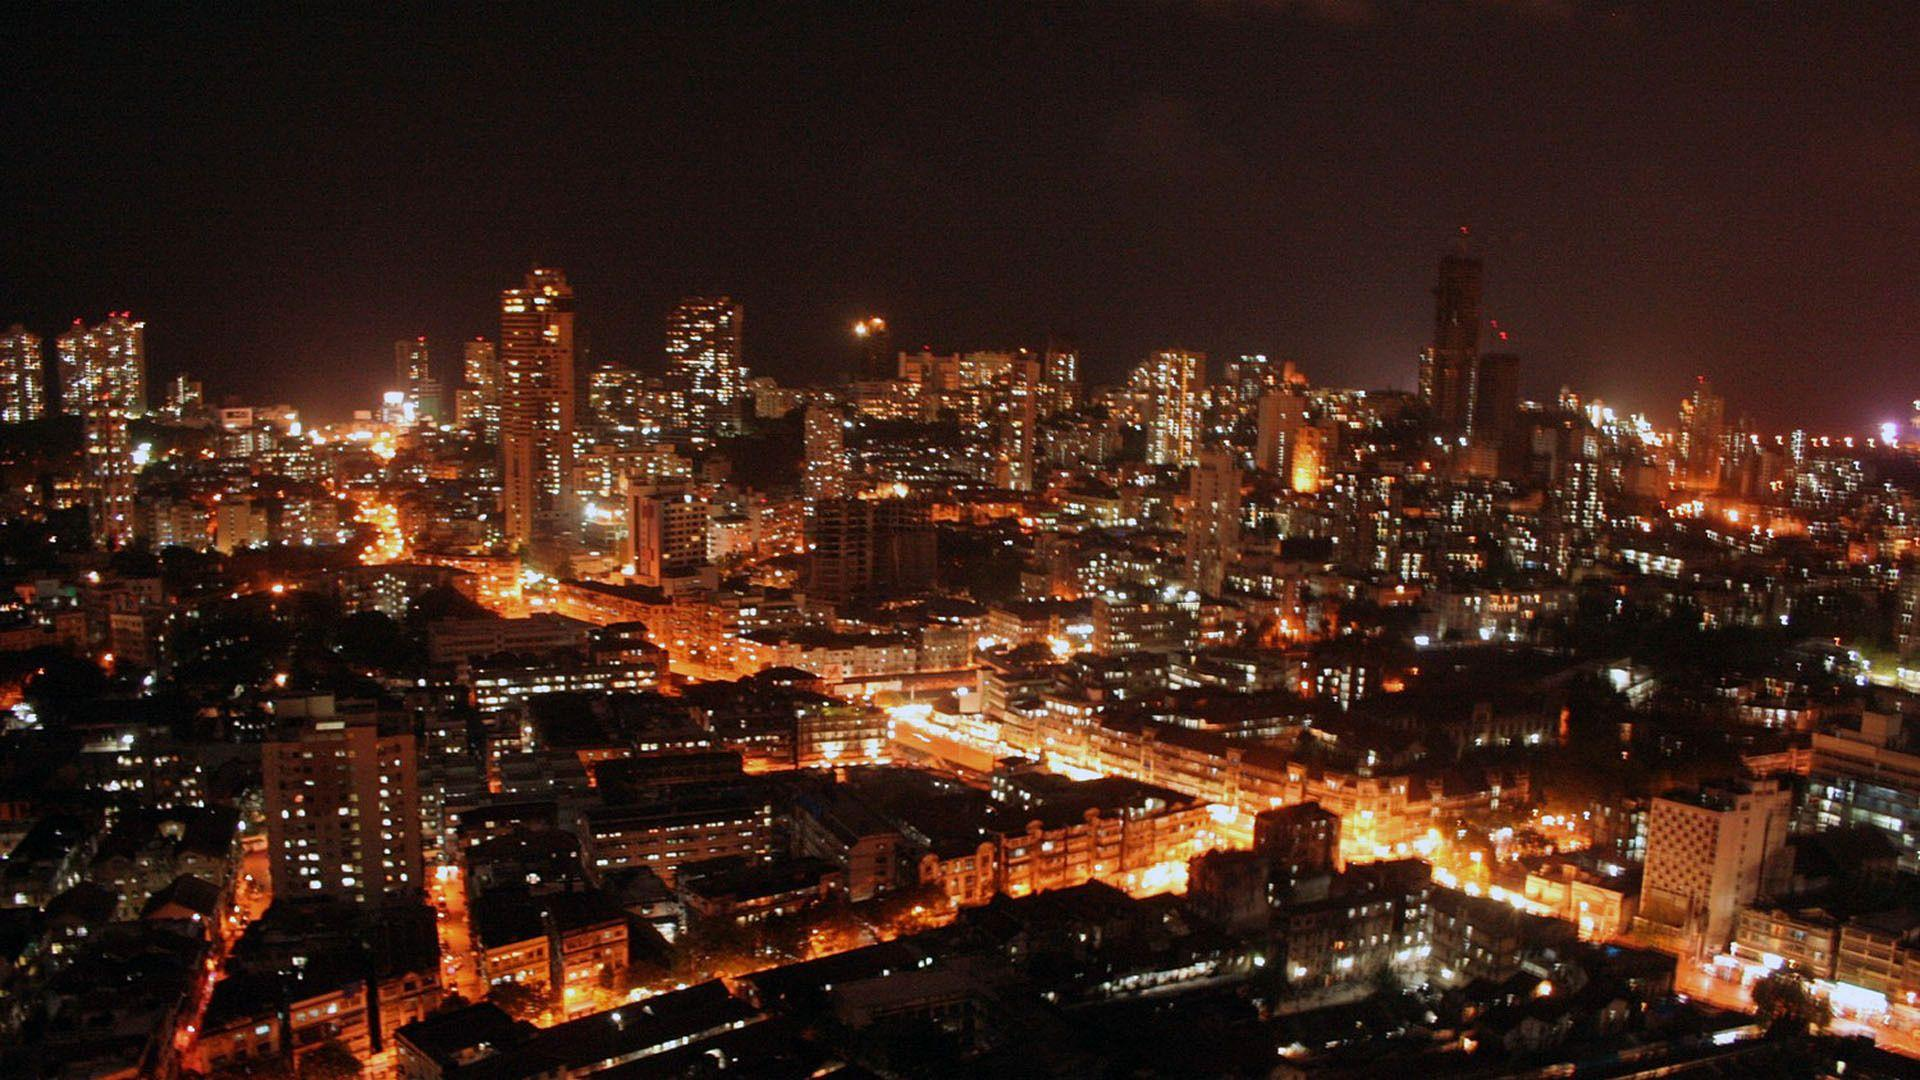 night Mumbai wallpapers and image